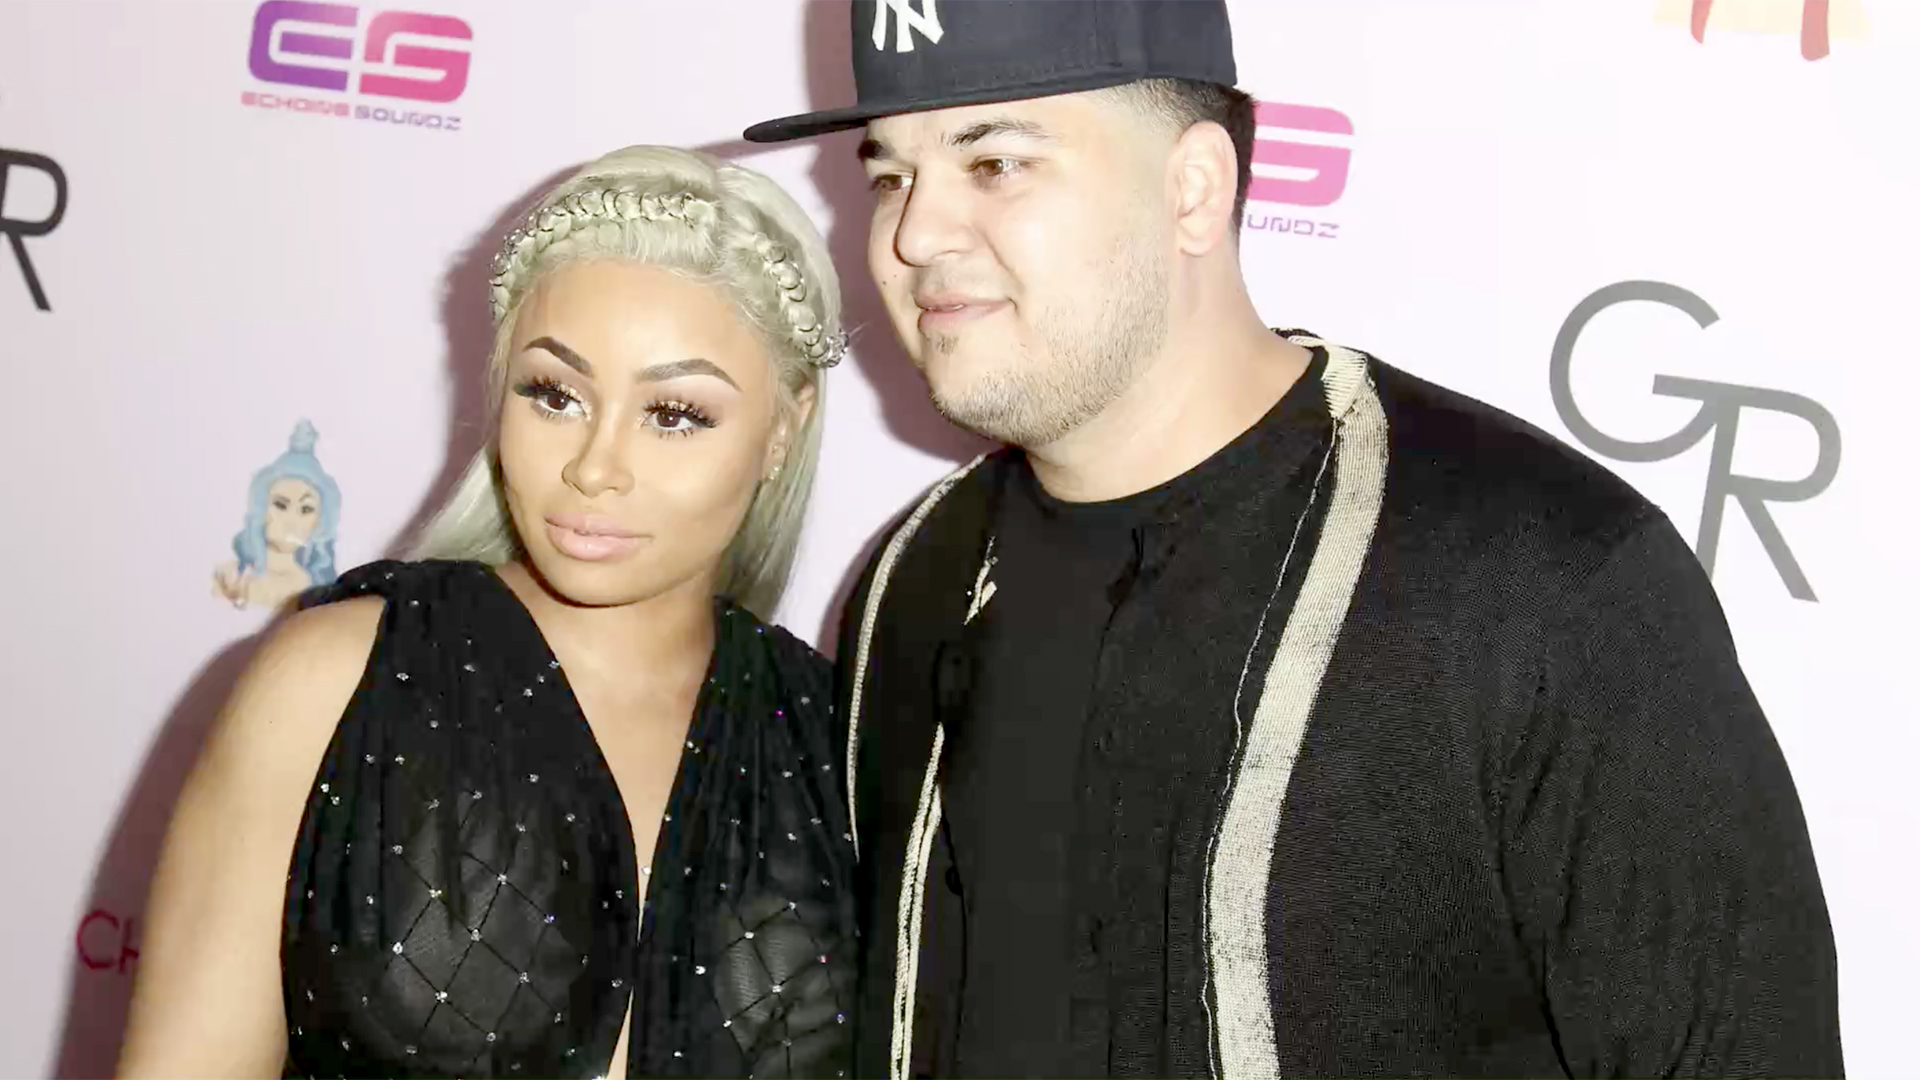 blac chyna's ex-boyfriend mechie says he appeared in sex tape | the